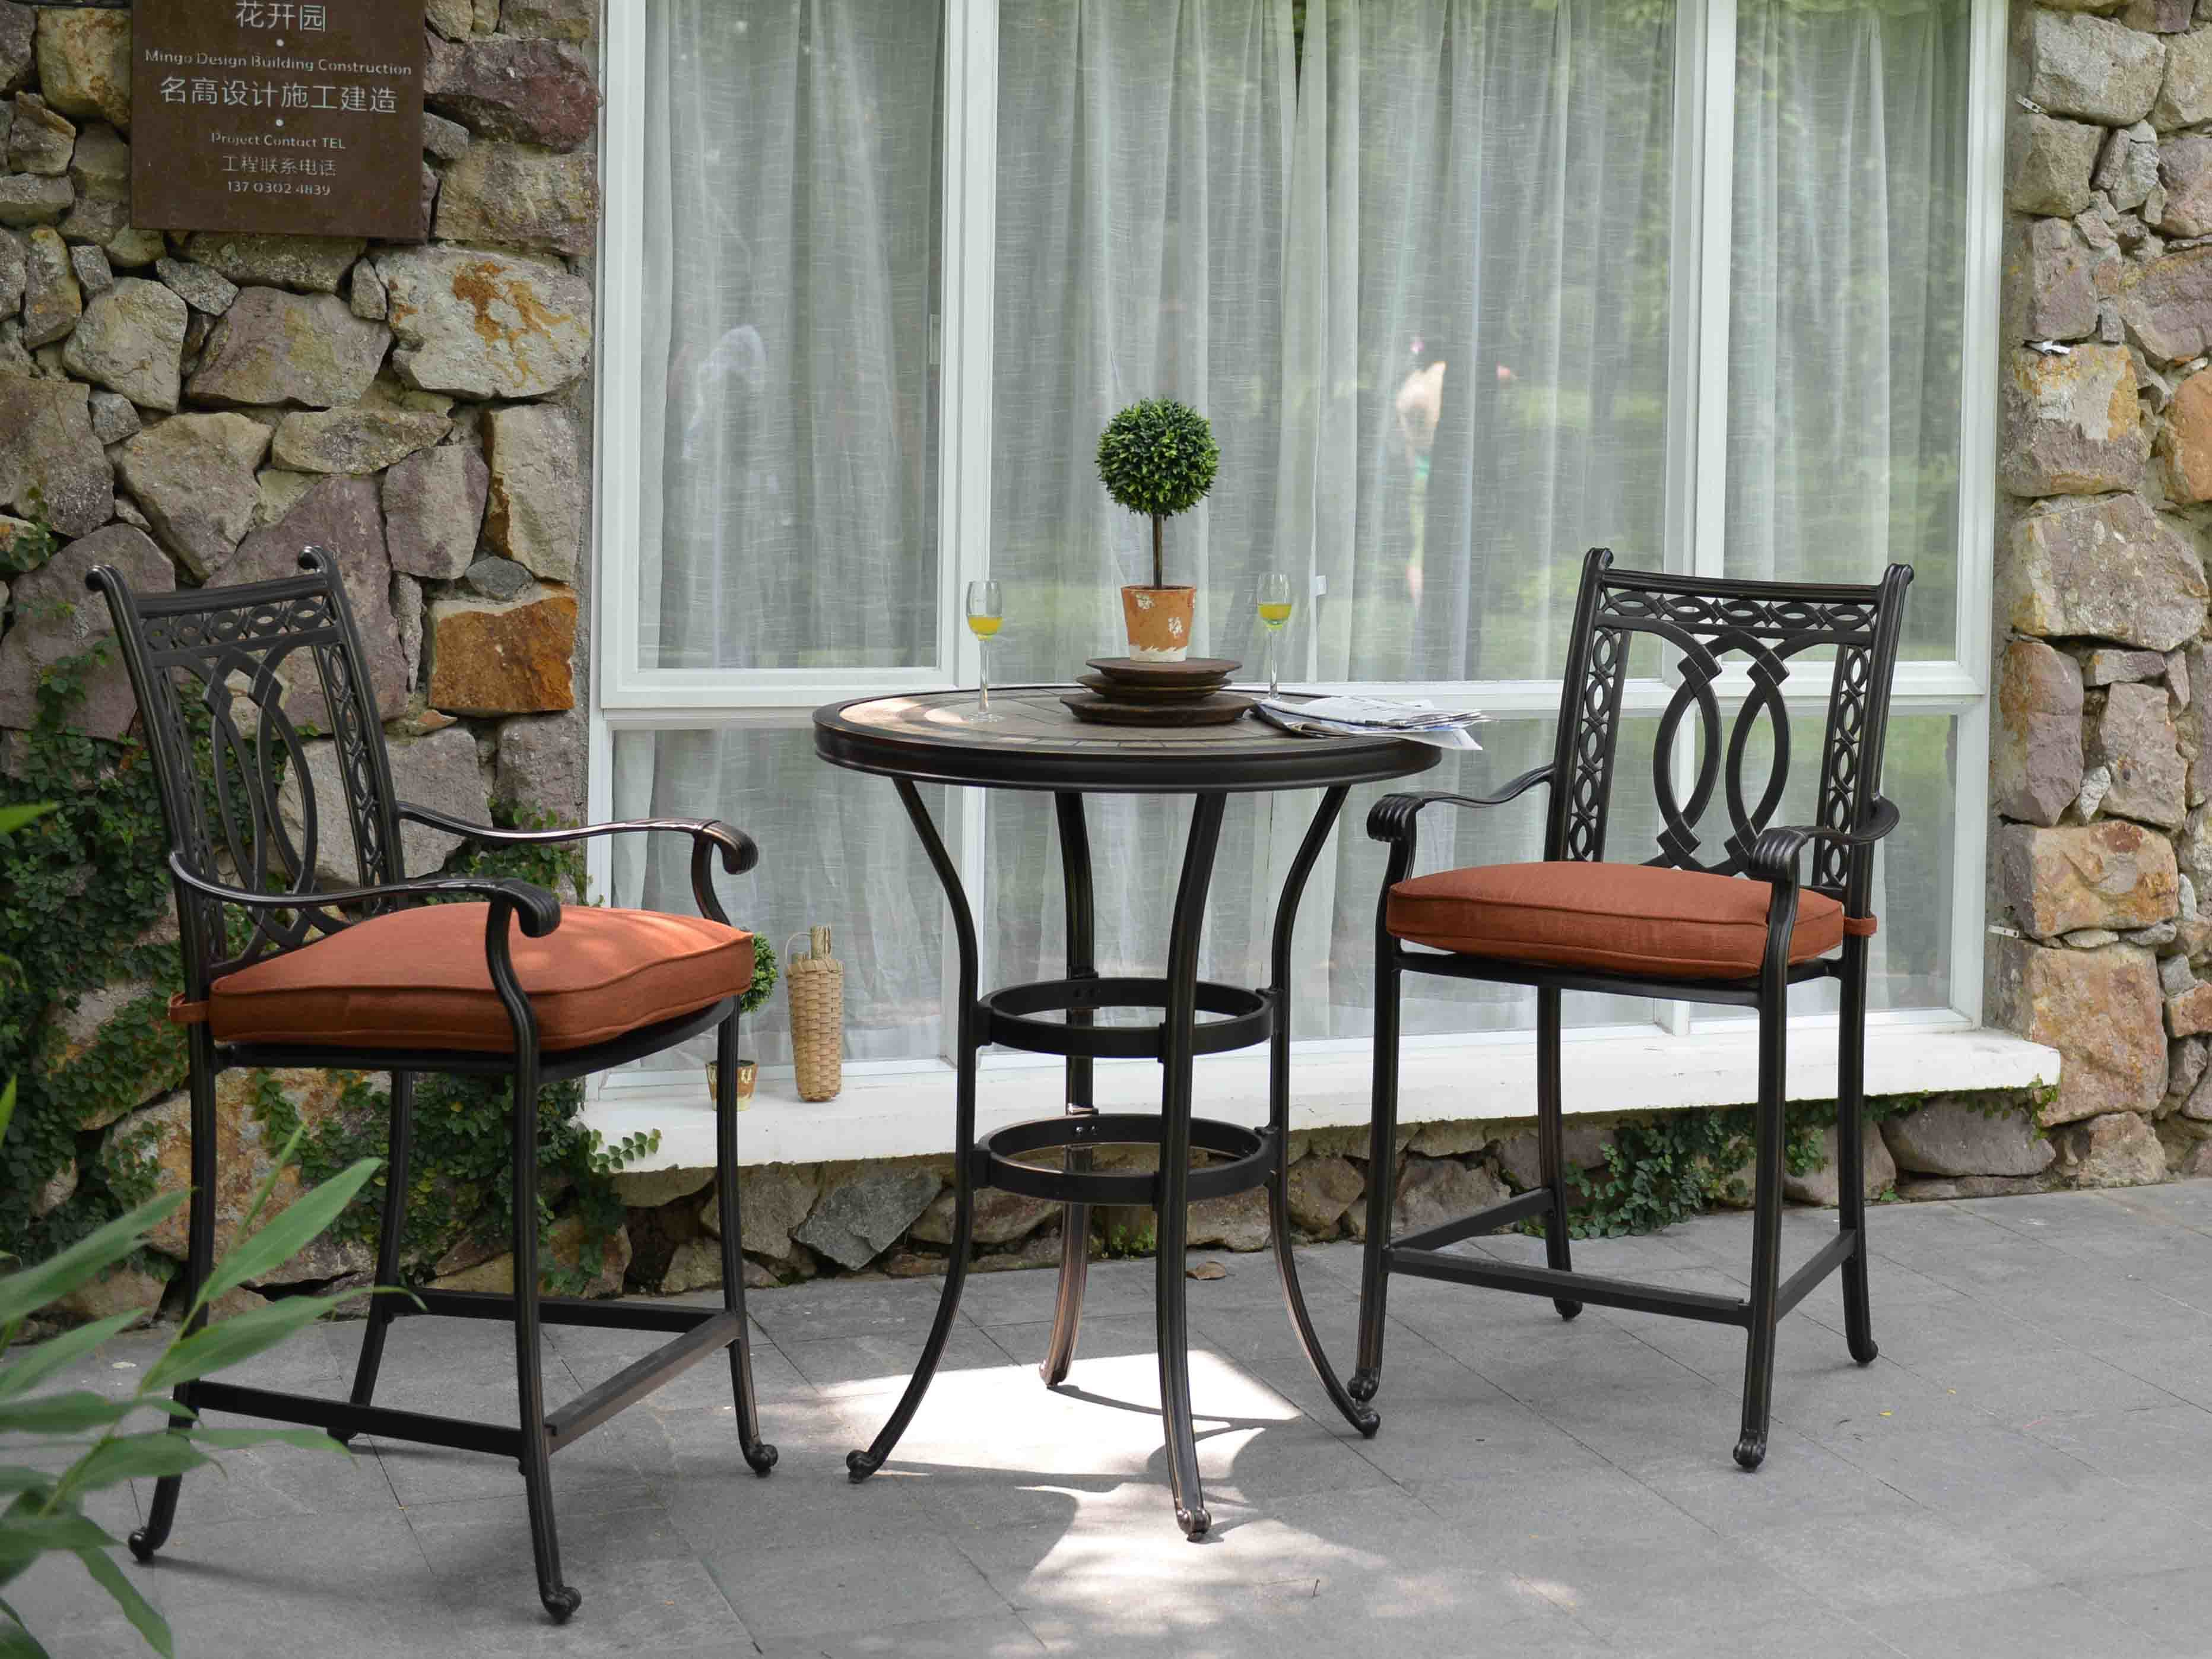 New Traditional American Style Outdoor Garden Furniture Iron Metal Restaurant Bar Table and Barstool